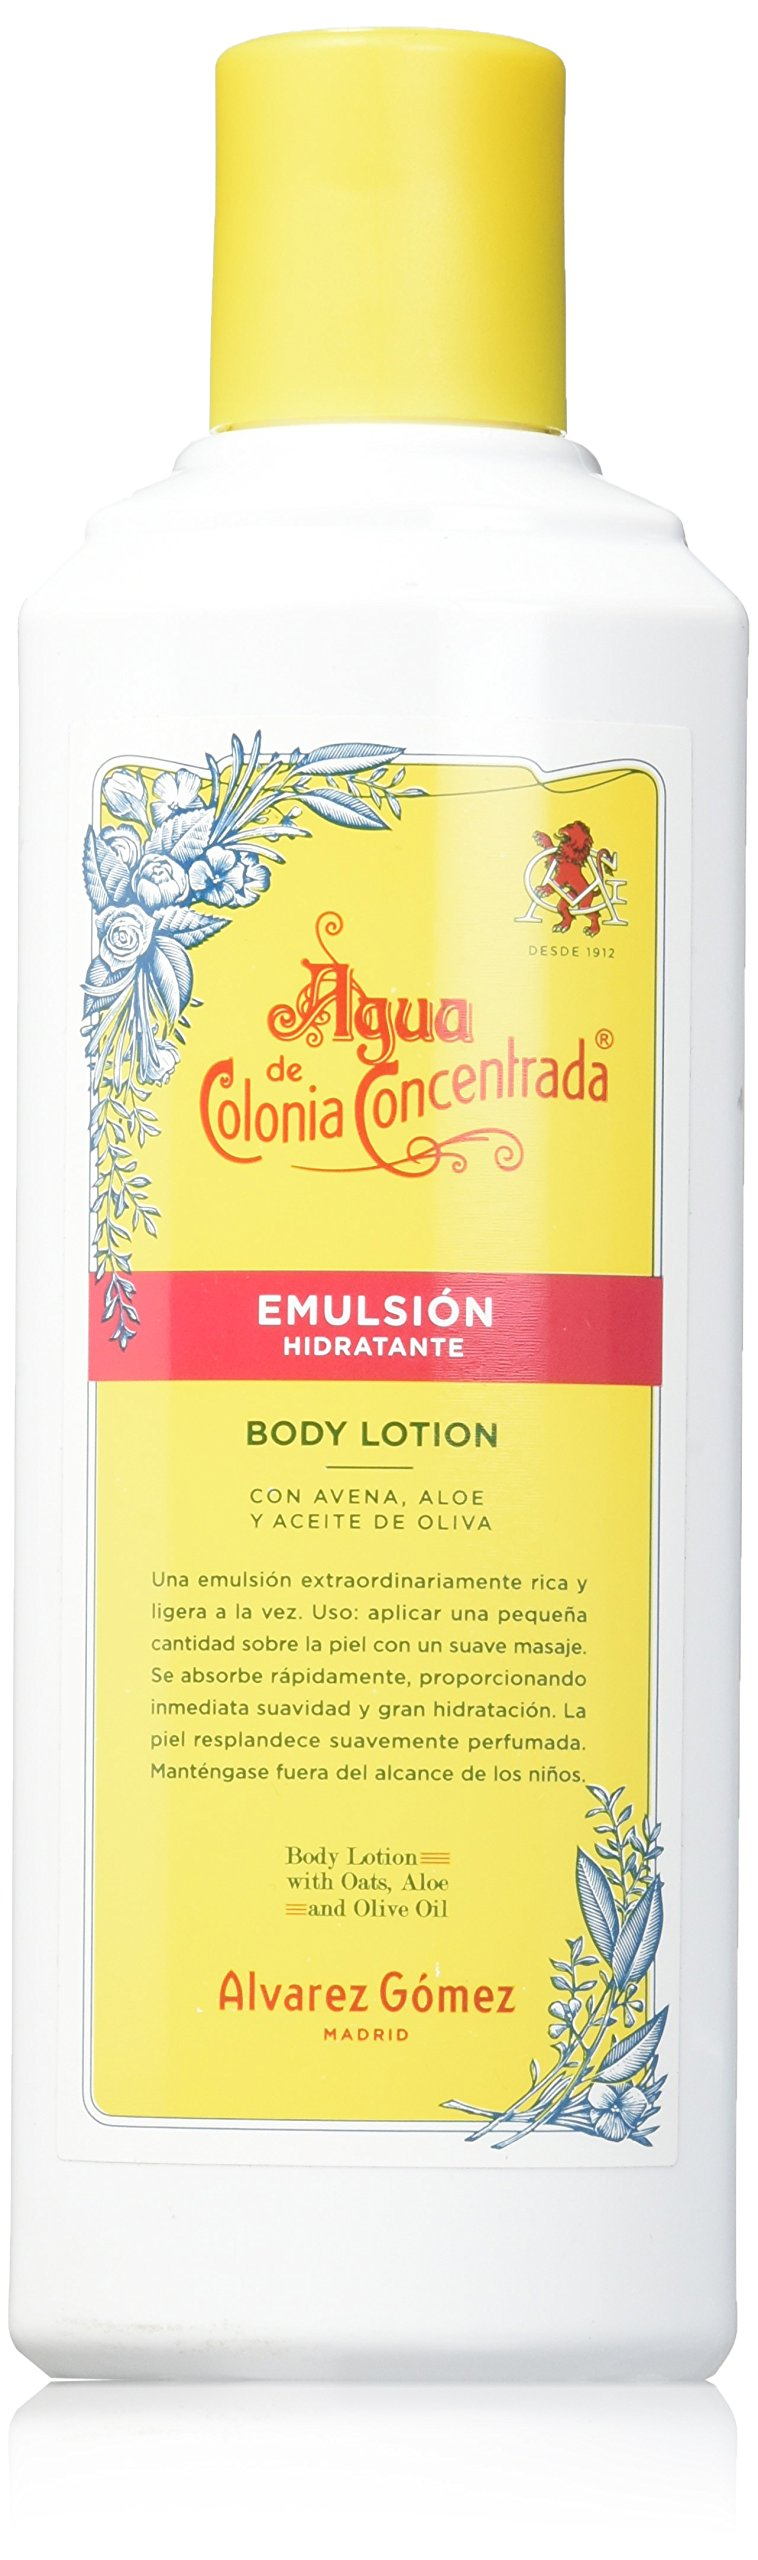 Alvarez Gomez Agua De Colonia Concentrada Body Lotion for Men, 10.5 Ounce